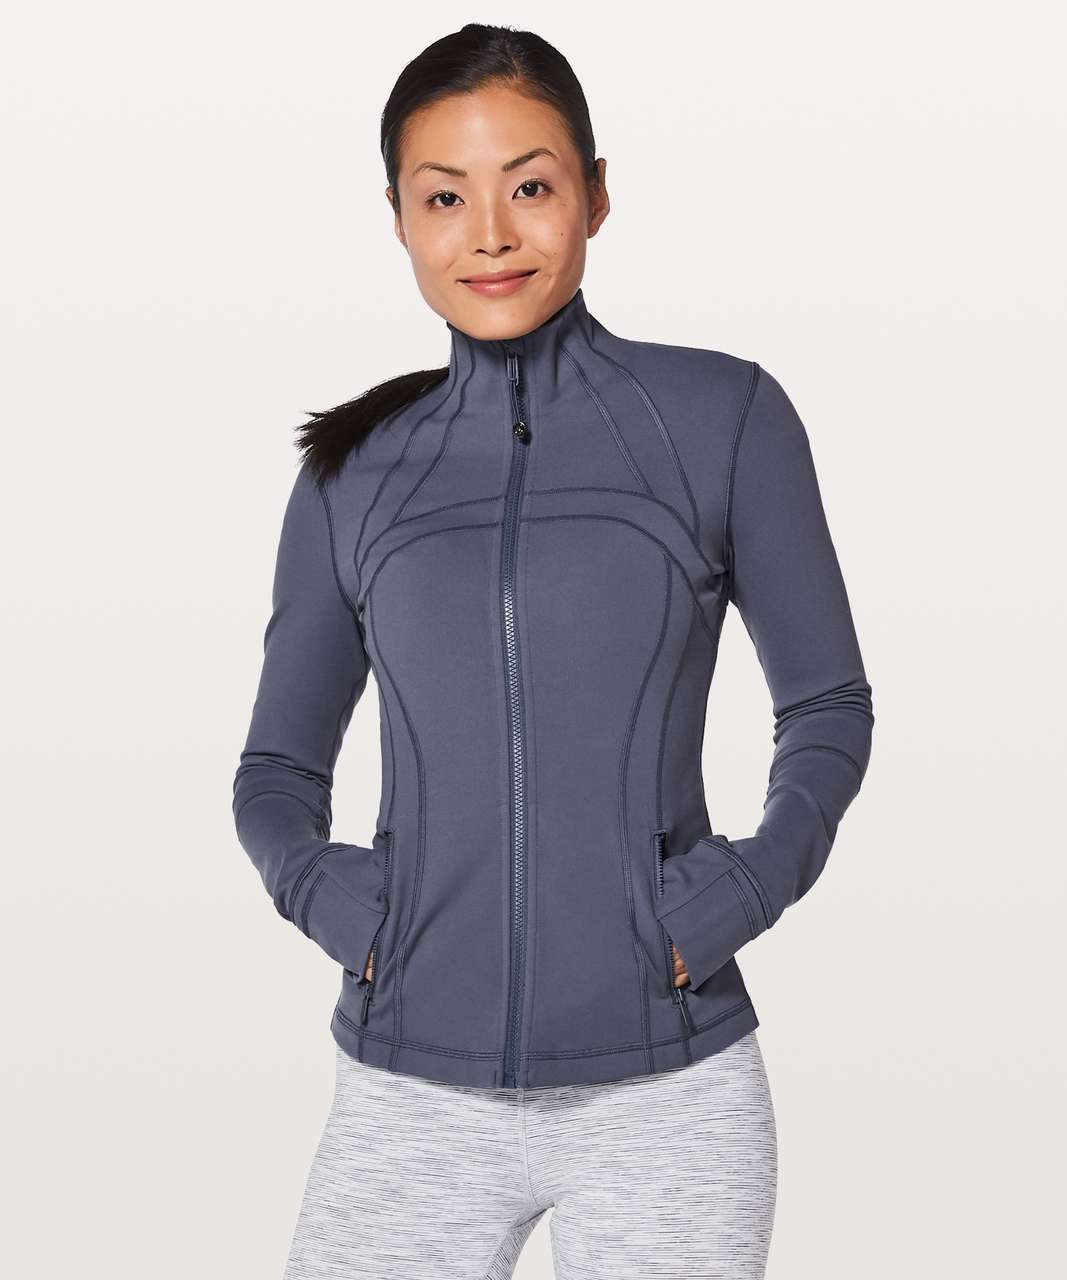 Lululemon Define Jacket - Dazed